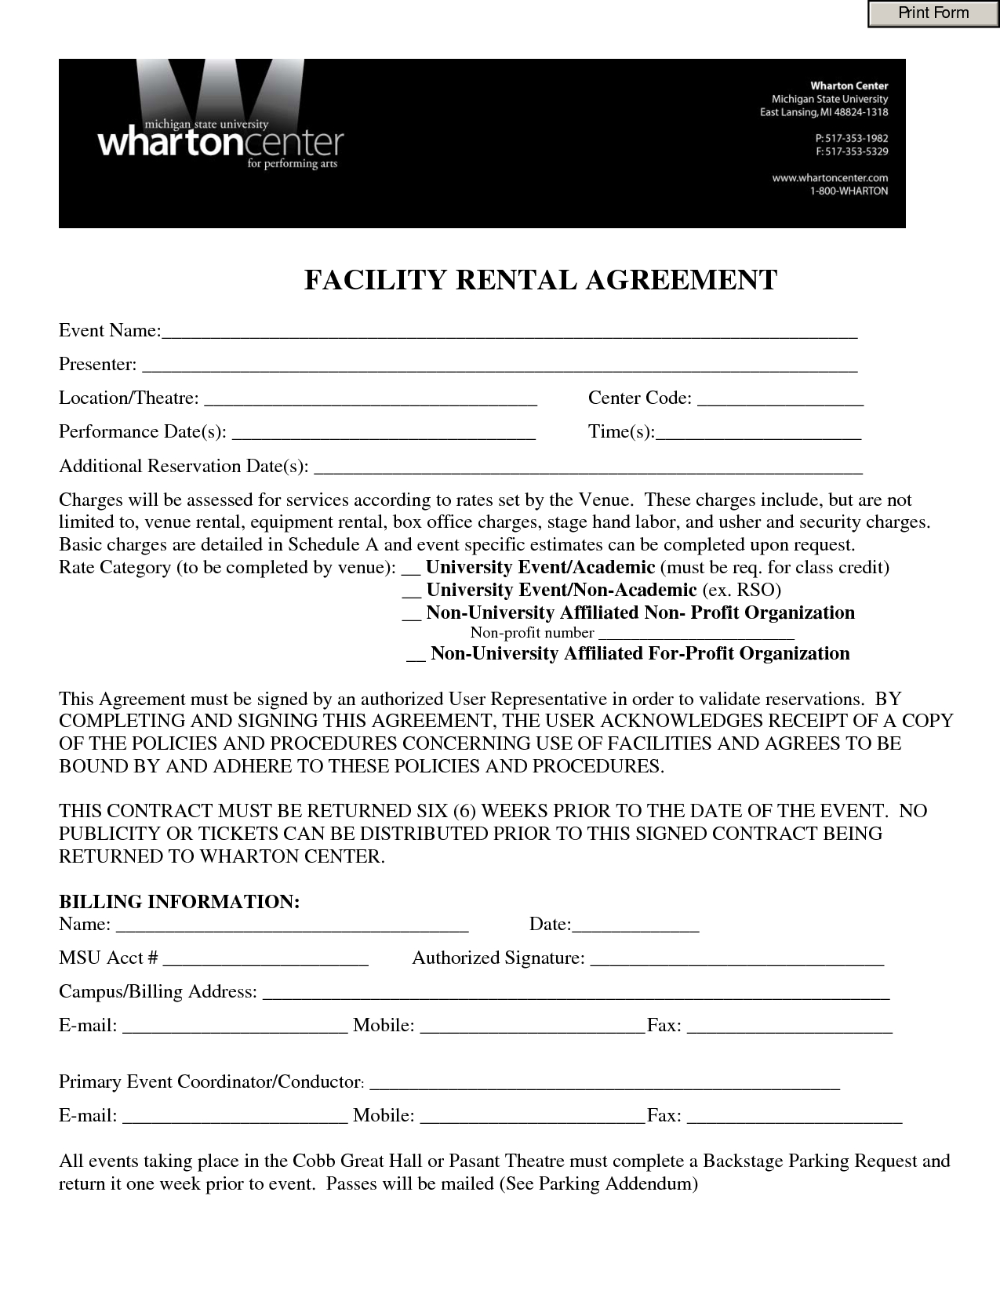 Event Contract Template Invitation Templates Facility Rental Intended For Bounce House Rental Agreeme Rental Agreement Templates Contract Template Venue Rental